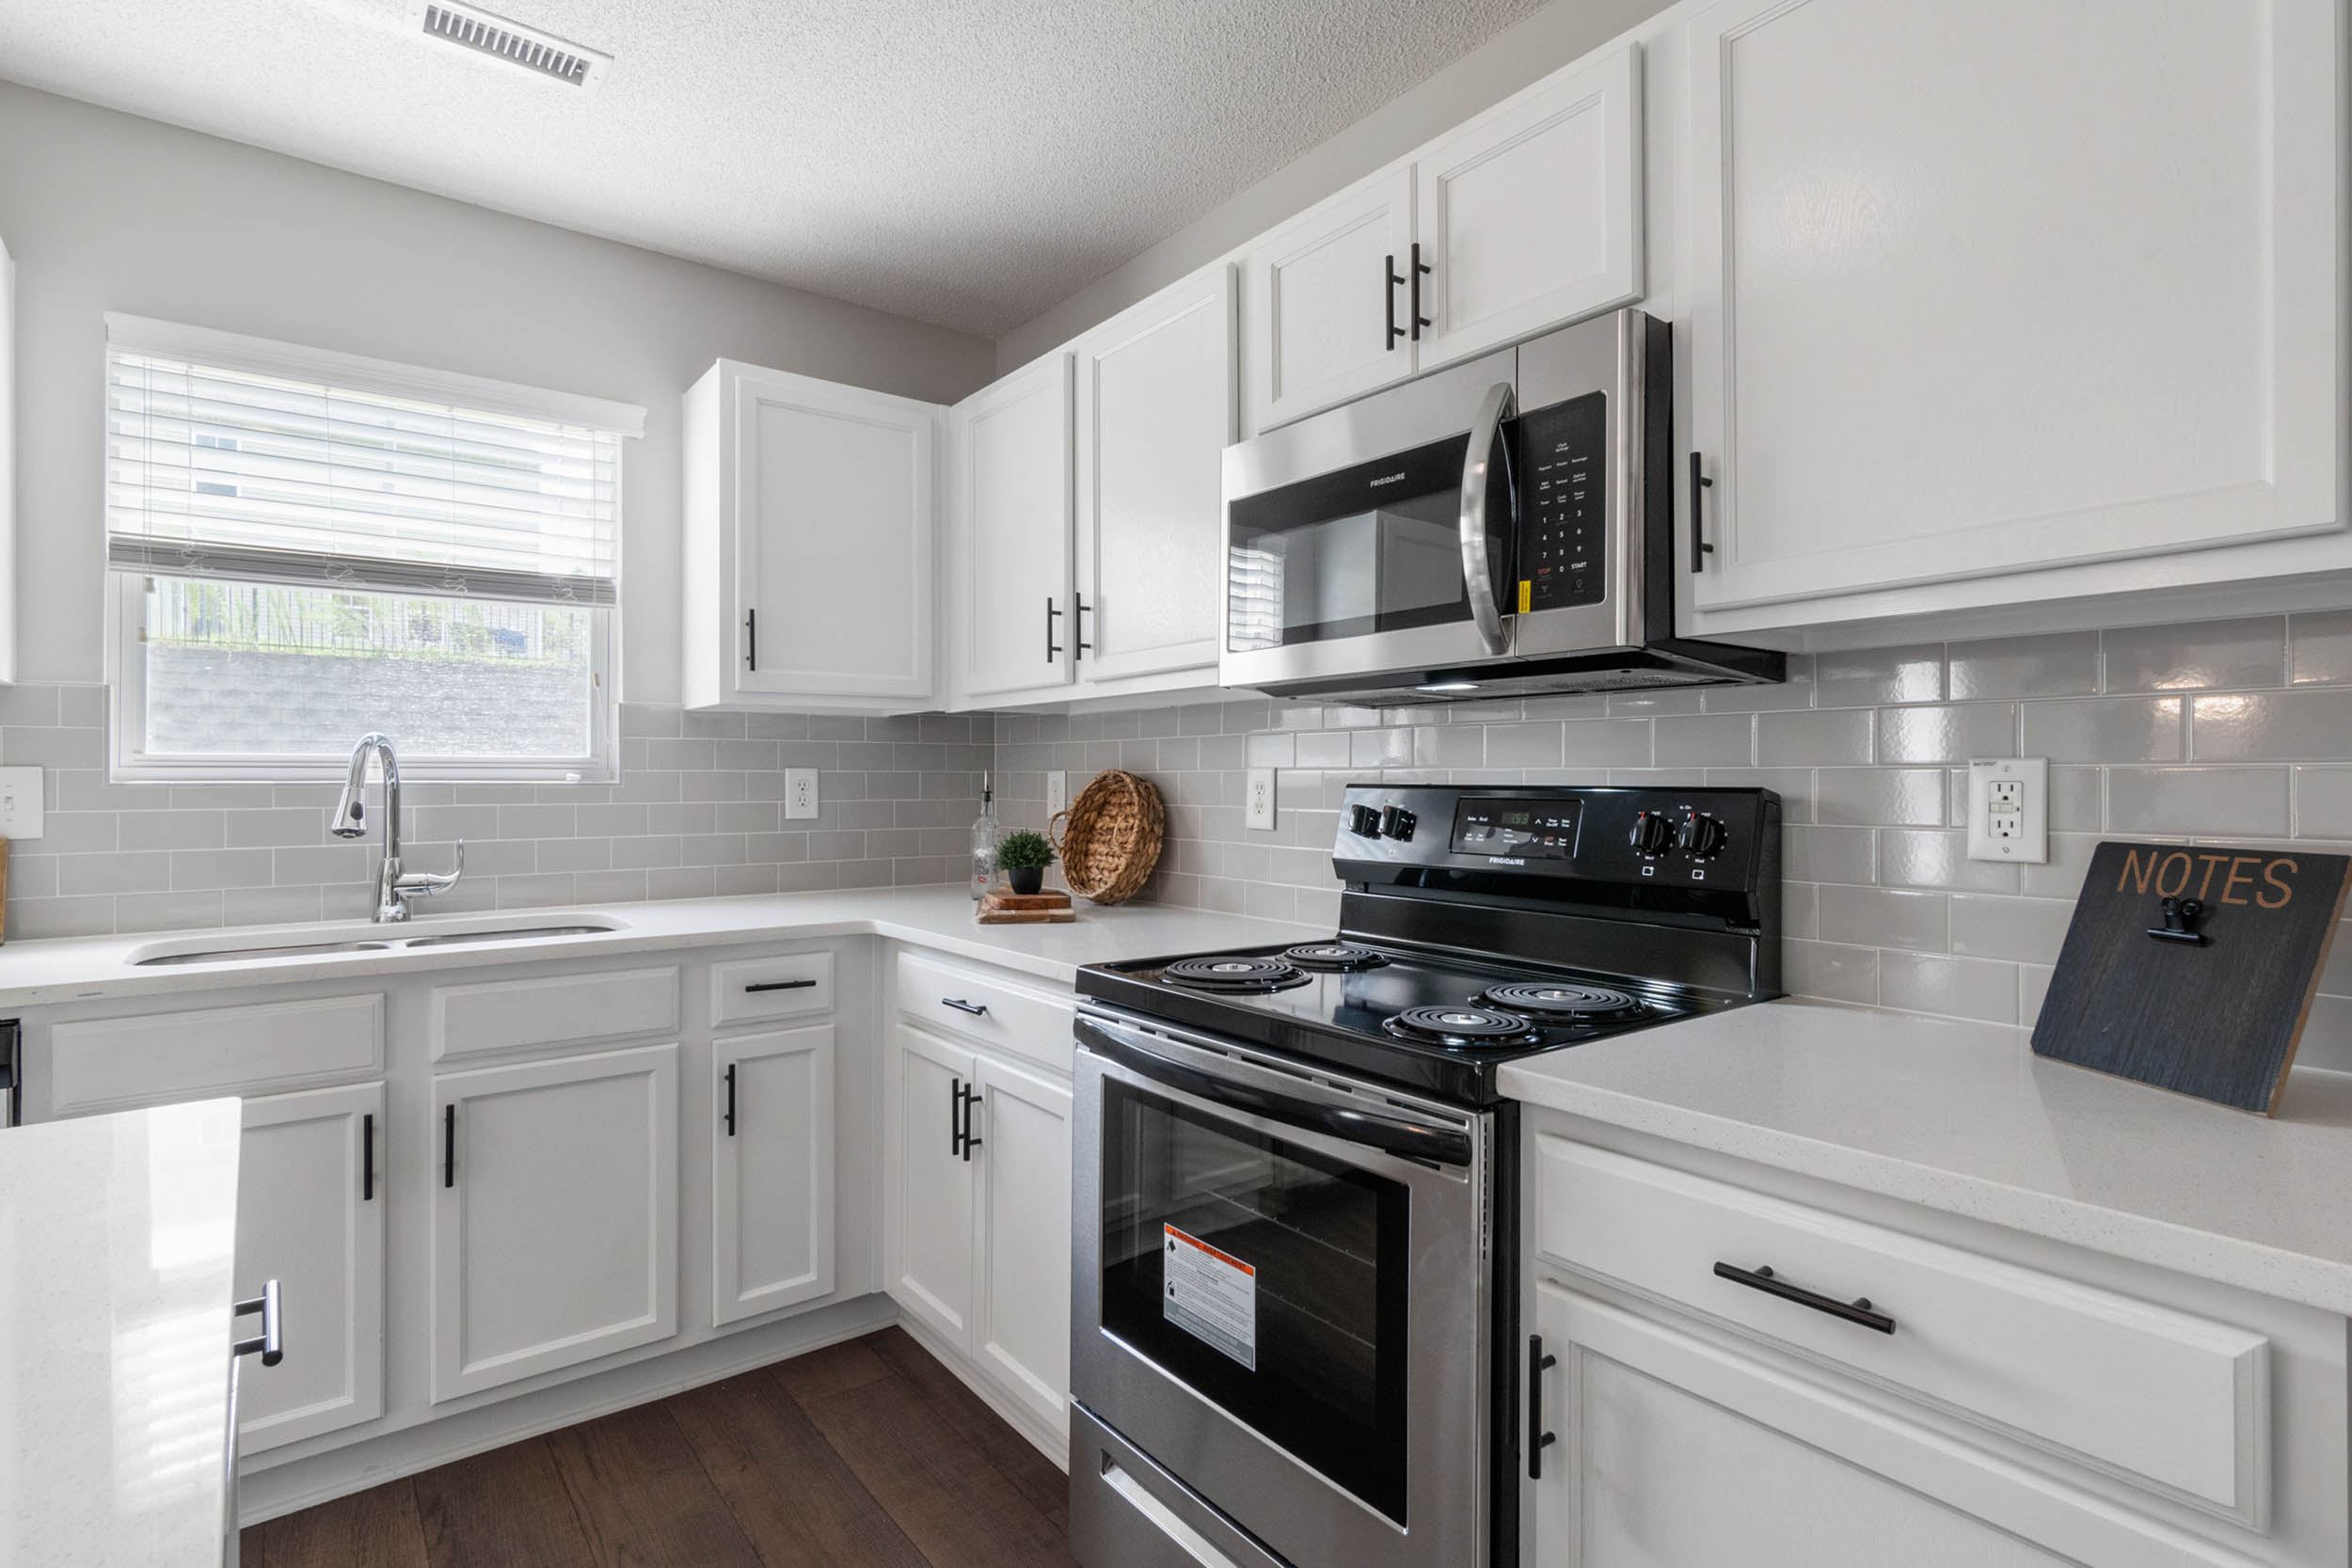 kitchen realestate ps blog 02 Business photography Real estate photography made easy